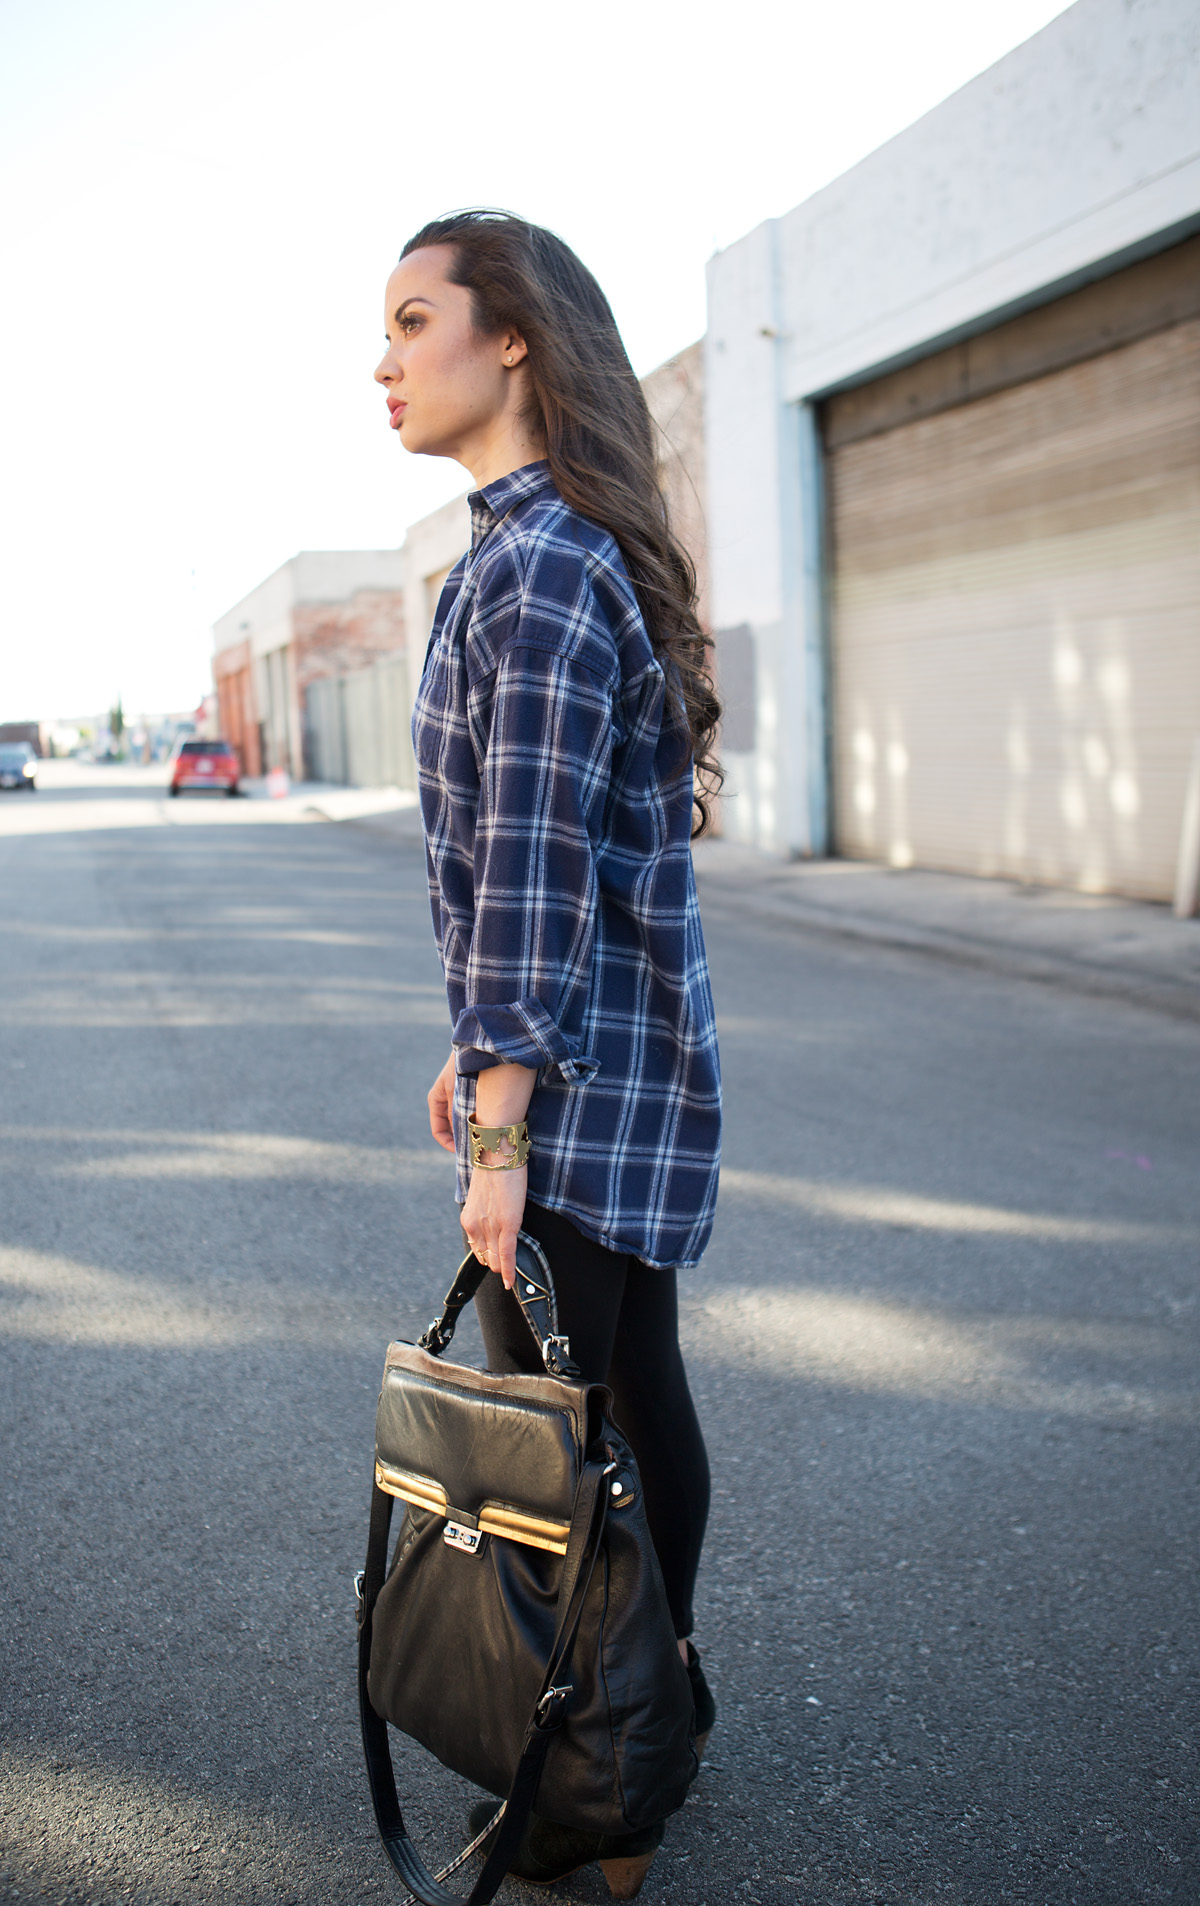 womens oversized flannel, model plaid, model flannel, womens flannel, womens plaid, oversized flannel, oversized plaid, uniqlo plaid, uniqlo flannel, uniqlo oversized shirt, uniqlo black leggings, womens black leggings, steve madden booties, steve madden black booties, steve madden pembrook booties, black suede booties, 3.1 phillip lim bag, 3.1 phillip lim purse, 3.1 phillip lim handbag, phillip lim black handbag, phillip lim black bag, phillip lim purse black , street style, model street style, downtown los angeles fashion, downtown fashion, los angeles fashion, dtla fashion, dtla style, downtown los angeles style, downtown style, bodychain, gold bodychain, body chain, gold body chain, ootd, perfect blowout, model eyelashes, model perfect lips, artelier globe cuff, artelier map cuff, bodychain, body chain, body chain shirt, bodychain shirt, gold bodychain, gold body chain, dtla photoshoot, dtla photo shoot, downtown la photoshoot, downtown la photo shoot, model dtla, model downtown la, model downtown los angeles, arts district, arts district la, arts district los angeles, artists district, artists district la, artists district los angeles, 6th street bridge la, 6th street bridge los angeles, drybar, blushington, drybar cosmo blowout, drybar model, drybar blowout, blushington makeup, rms beloved, rms lip2cheek beloved, off duty model style, los angeles style, camille newbern, papillon, the la survival guide, la survival guide, thelasurvivalguide, lasurvivalguide, eurasian models, eurasian actresses, los angeles fashion blogs, los angeles style blogs, shopping la, shopping los angeles, modeling la, modeling los angeles, long hair blowout, smile model, modeling smile, dog smile, papillon, papillon dog, los angeles photo shoot, model on dog walk, dog and model